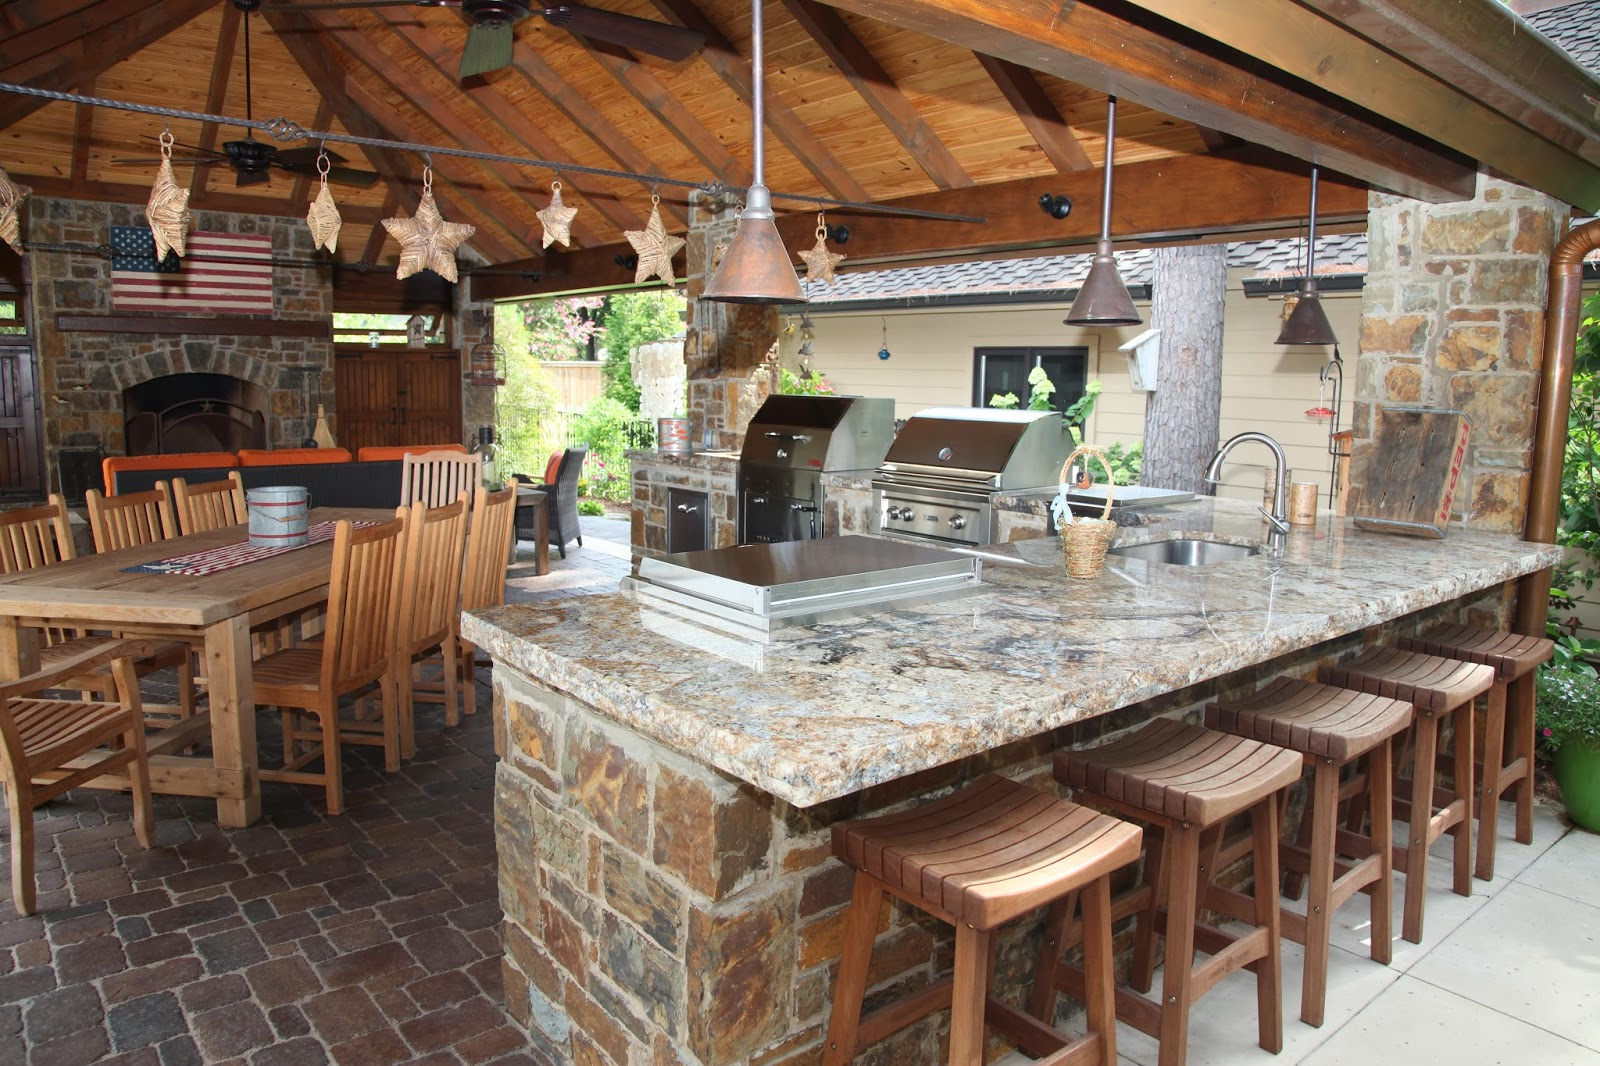 Outdoor Kitchen Countertop Outside Kitchen Outdoor Kitchen Granite How To Anchor An Outdoor